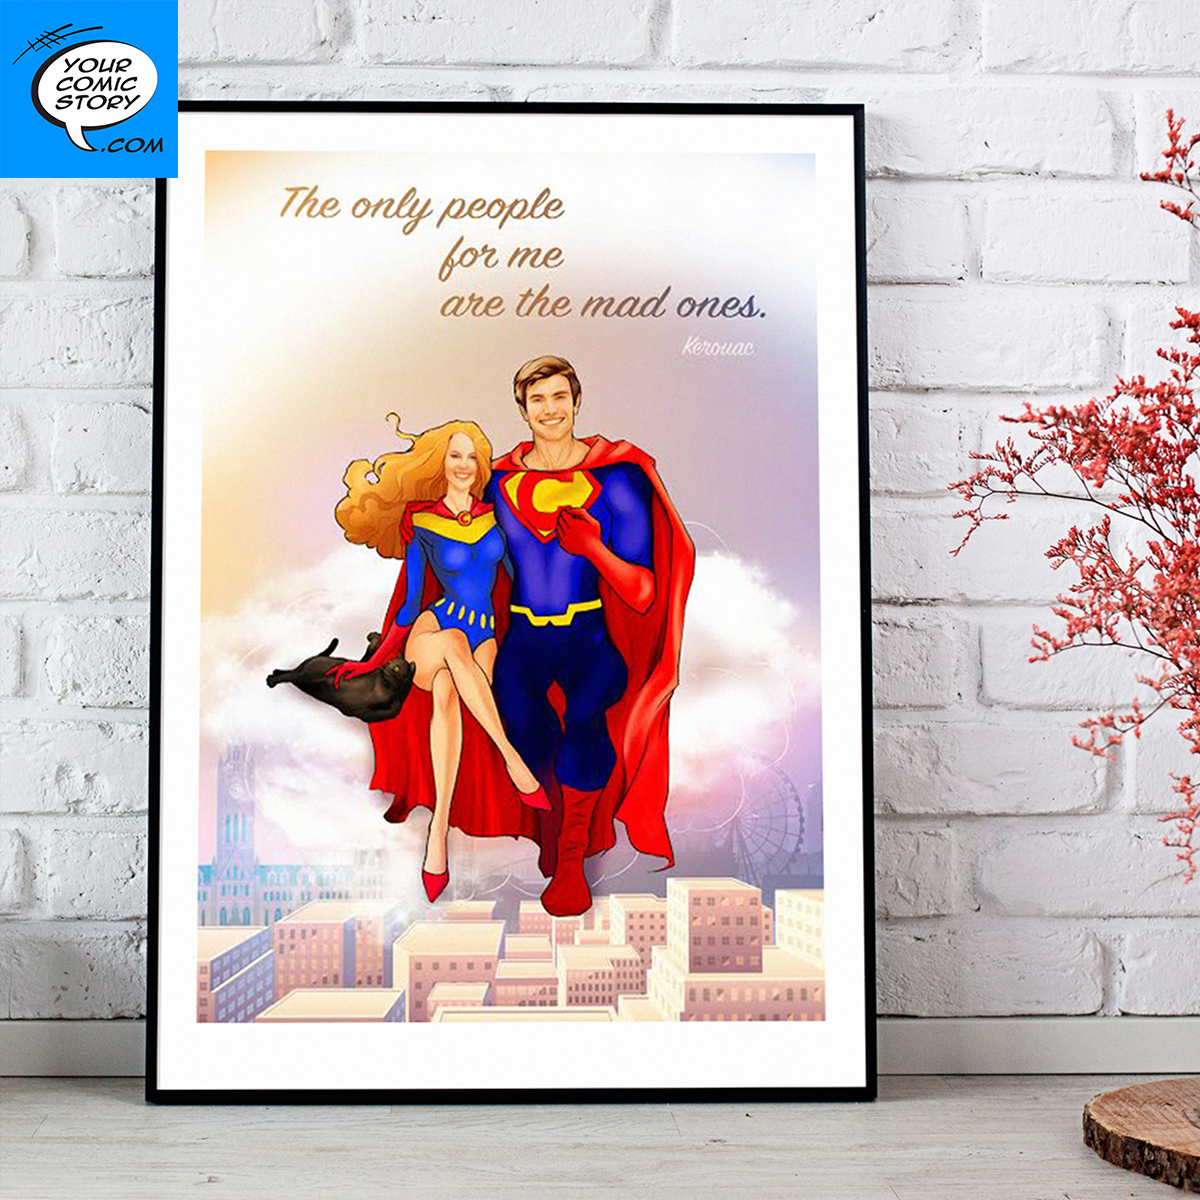 Celebrate Your Paper Anniversary With a Custom Gift from Your Comic Story!